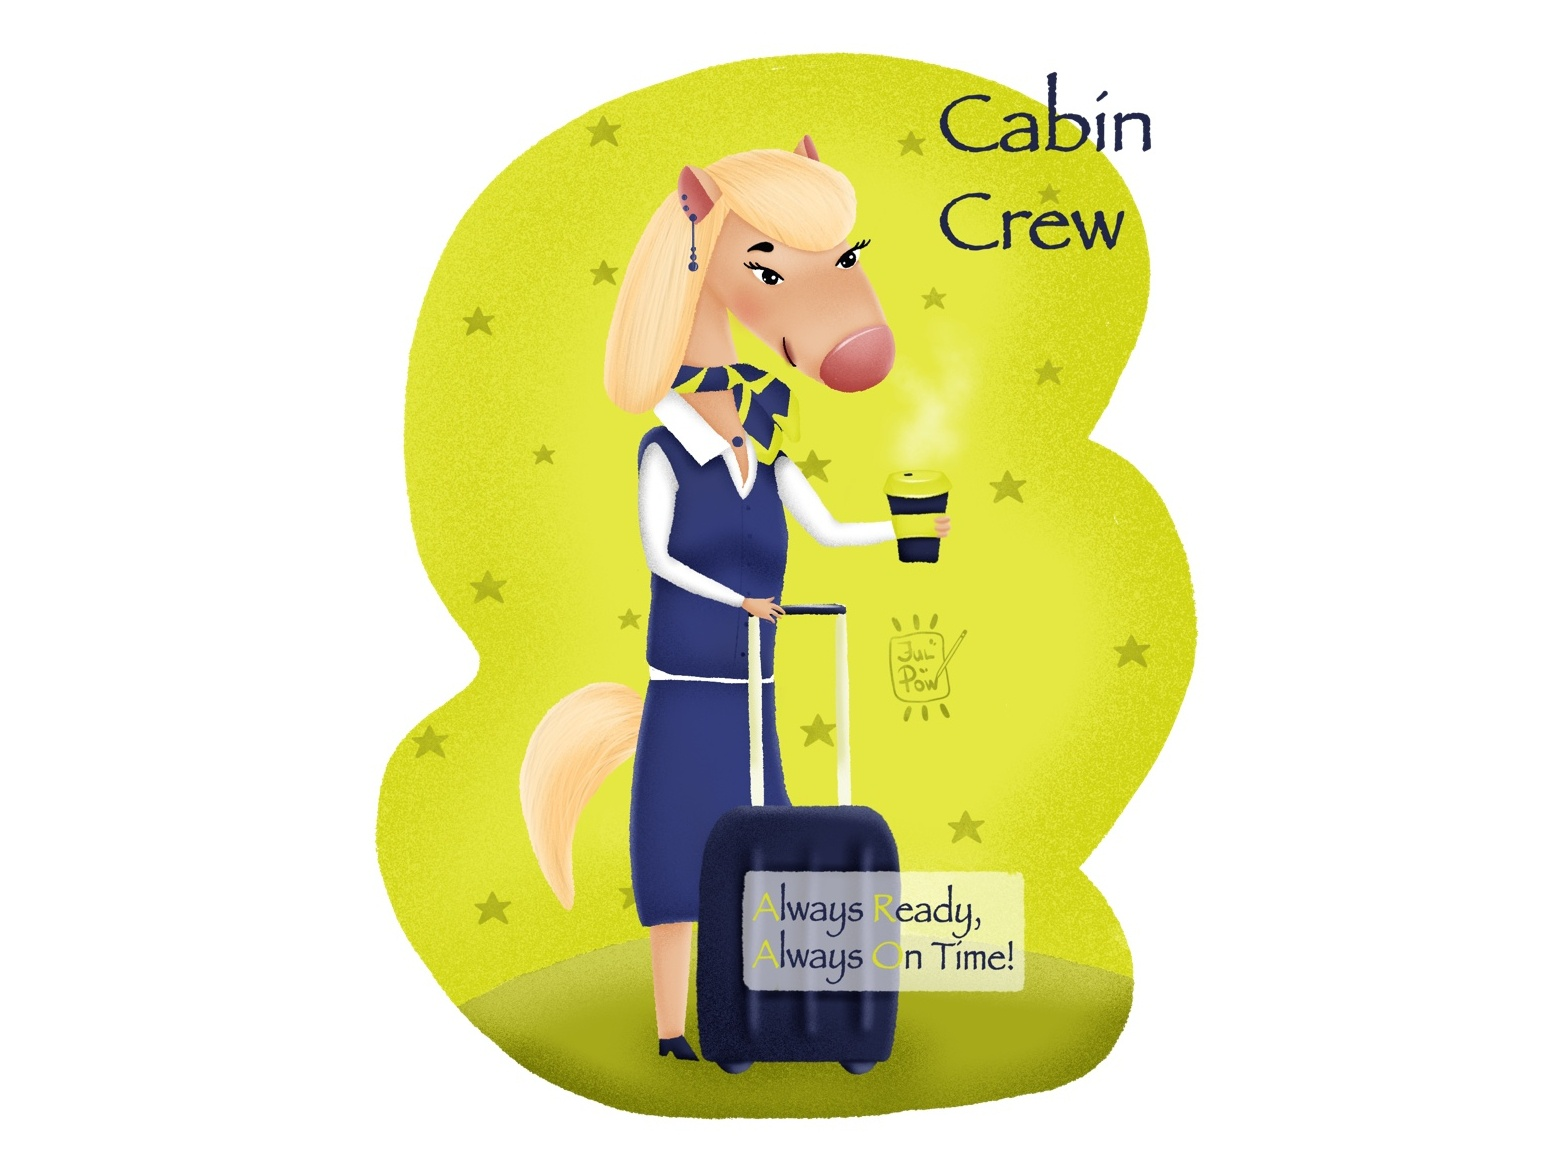 Cabin crew pony. advertising character travel illustration character design greetingcard pony cabin crew